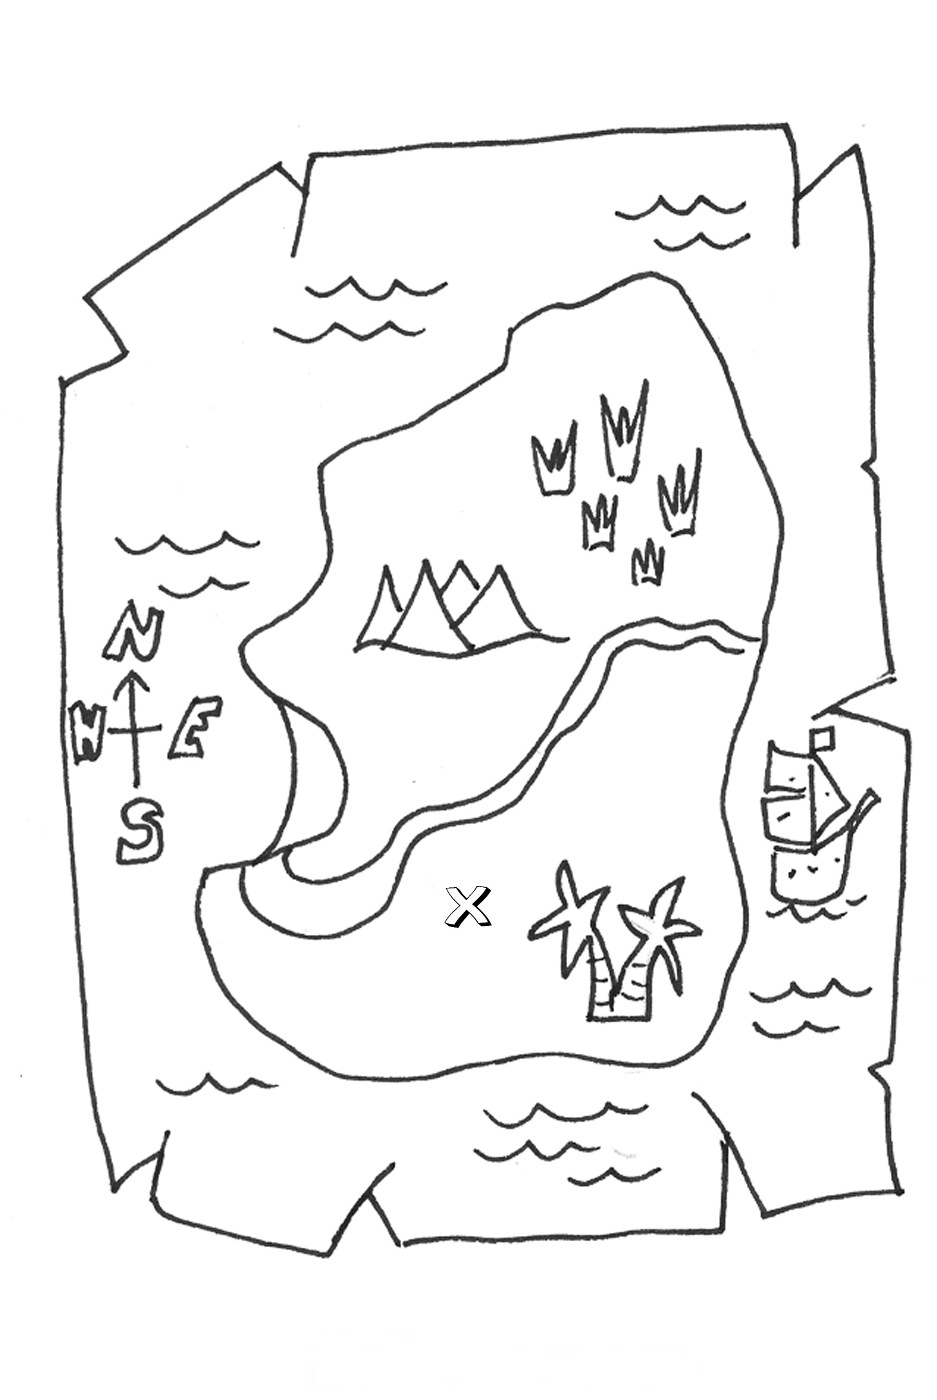 Teasure Map Coloring Page 01